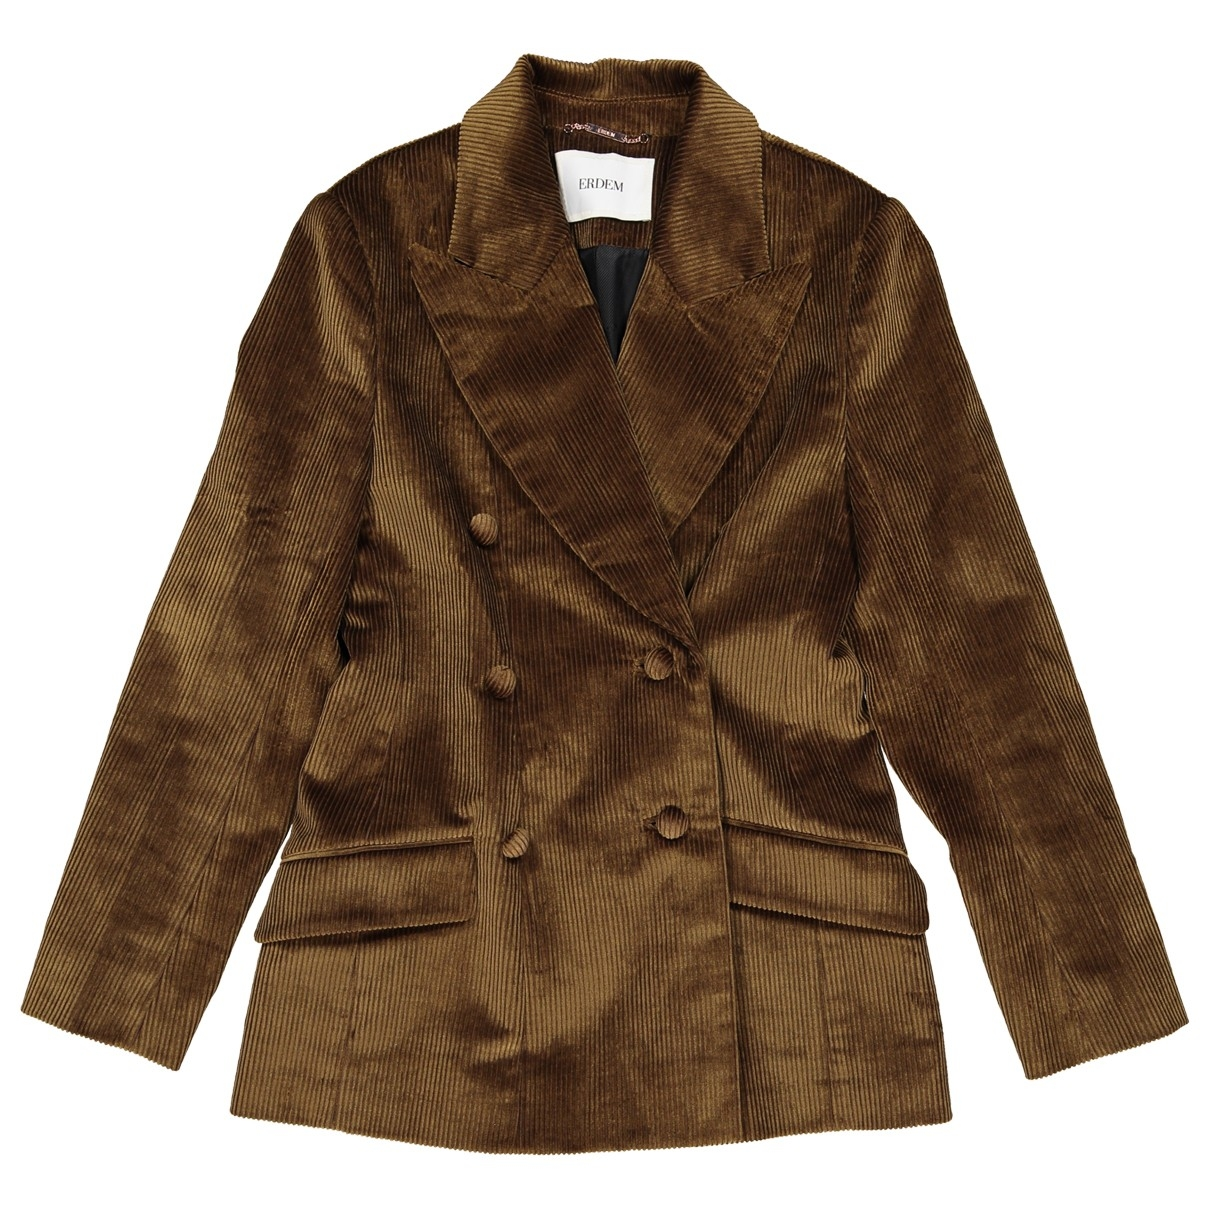 Erdem \N Khaki Velvet jacket for Women 10 UK